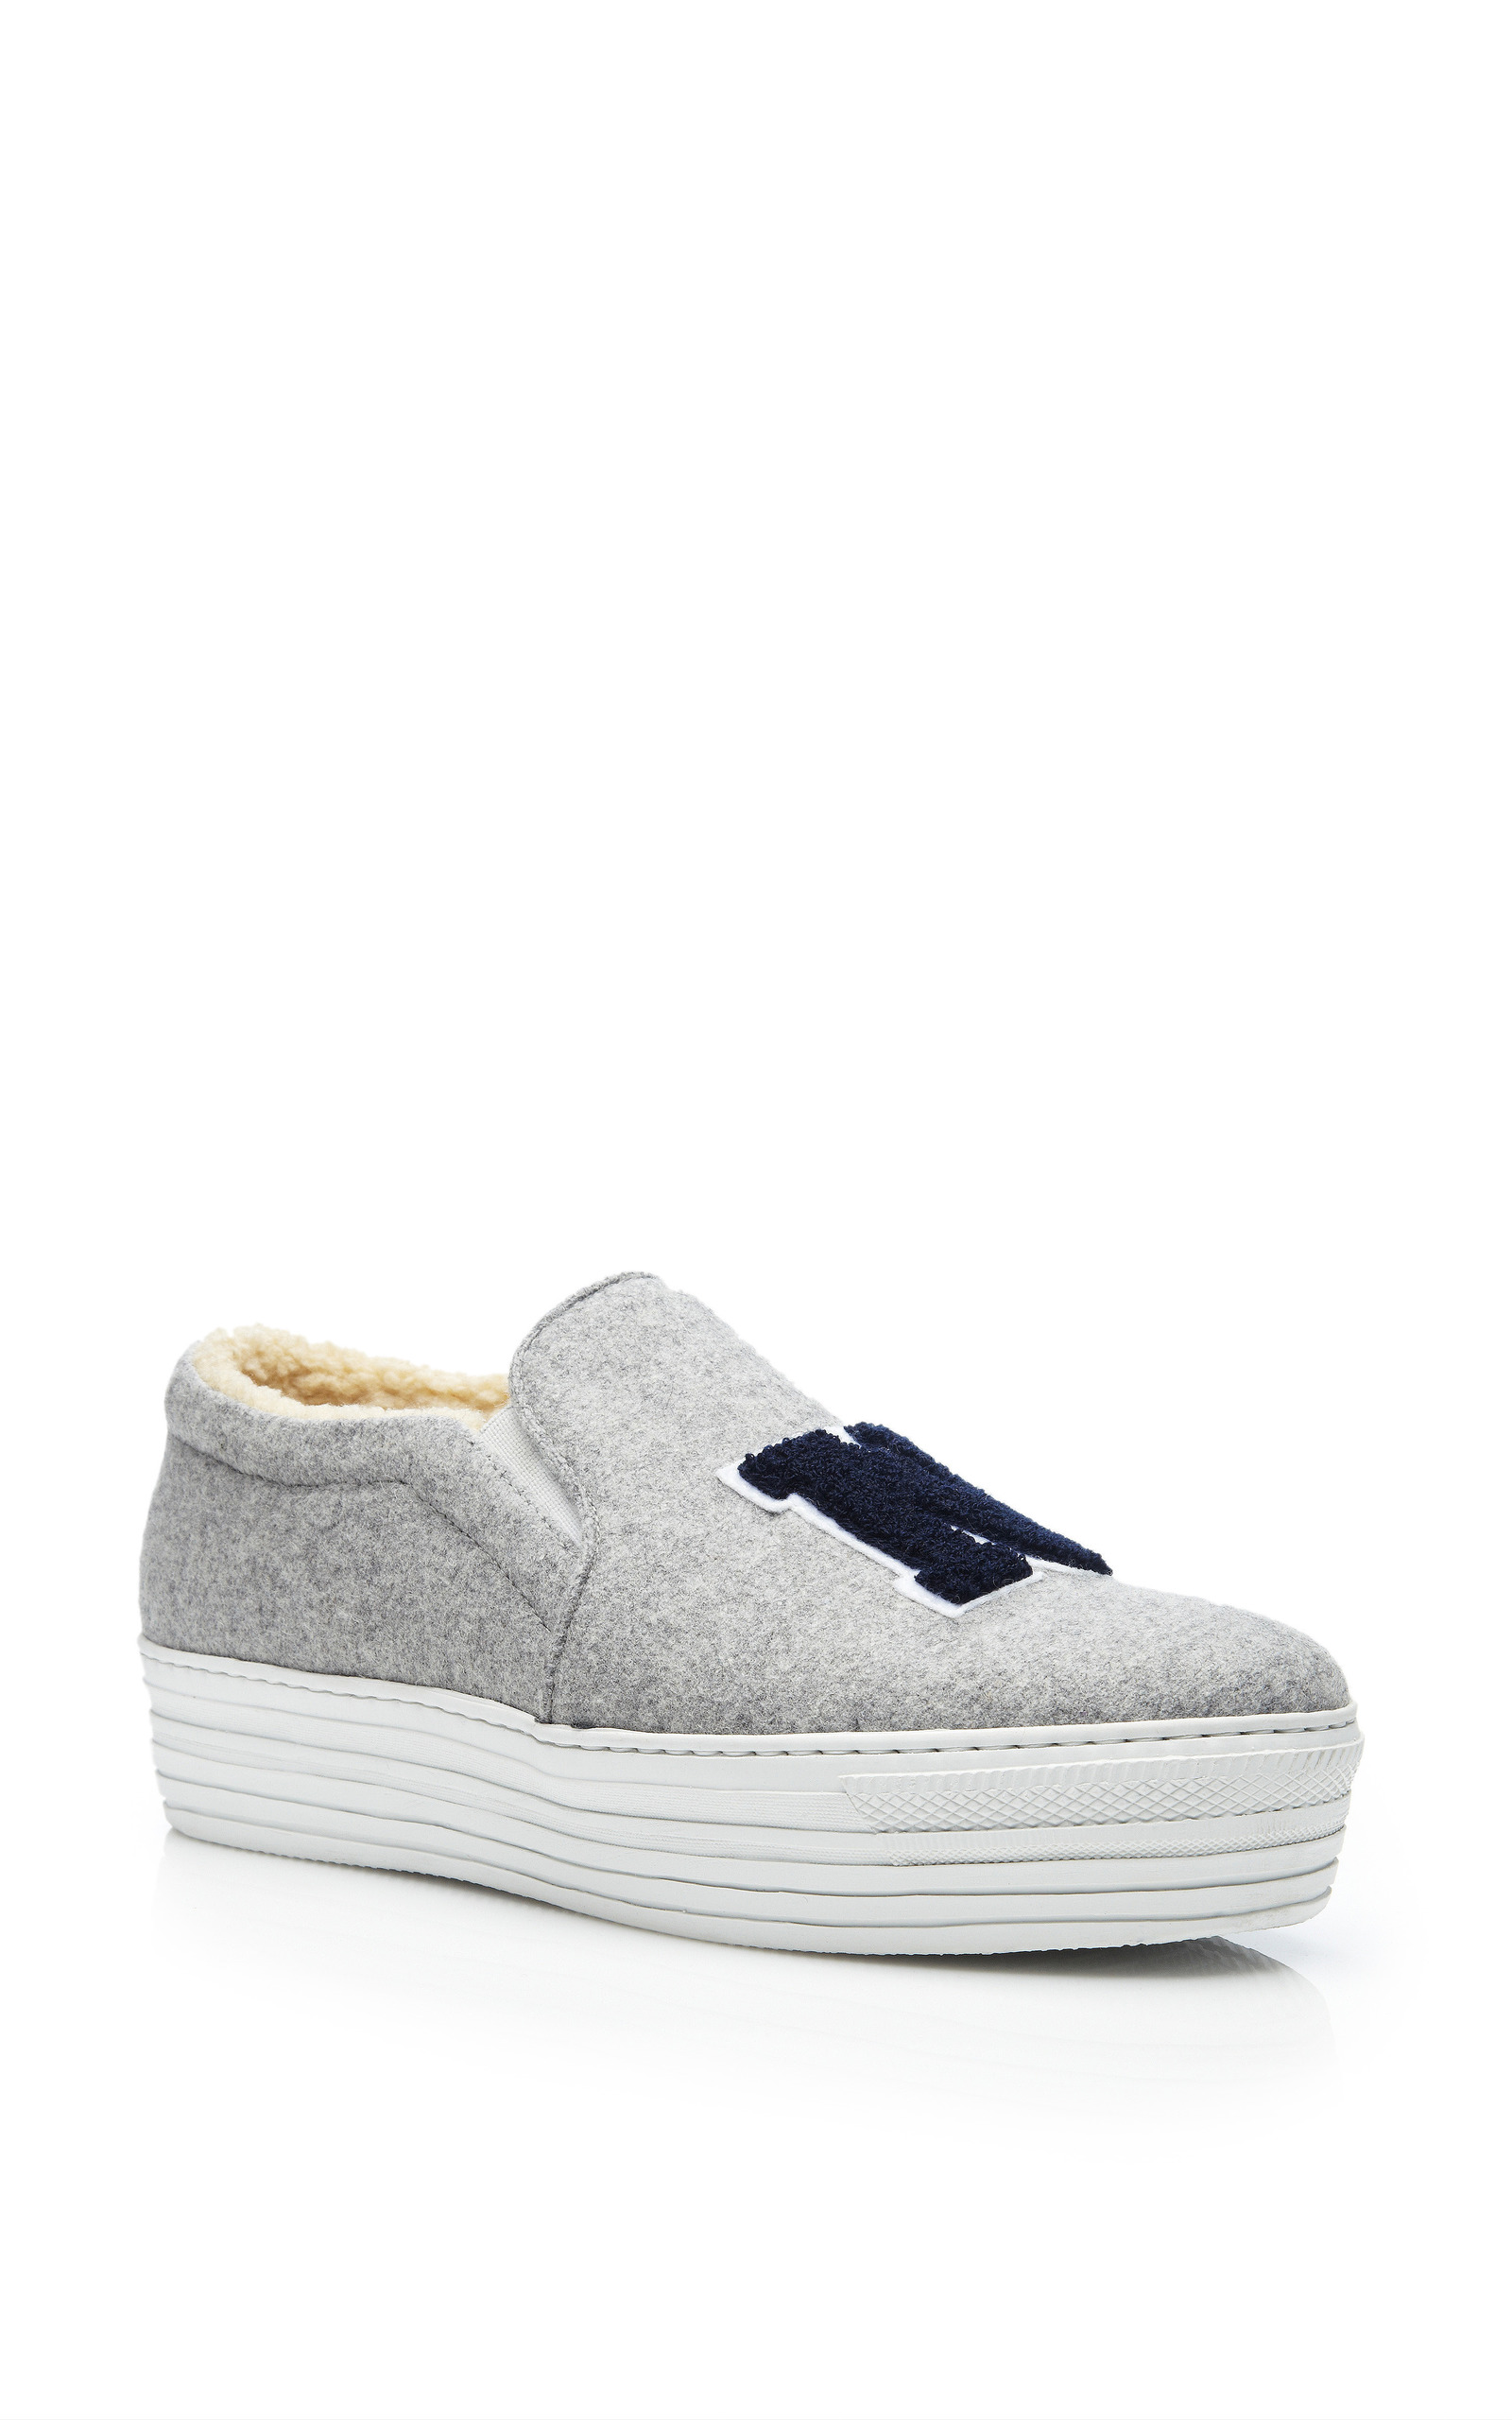 Joshua Sanders NY slip-on sneakers cheap shop for cheap authentic o7xx8TD